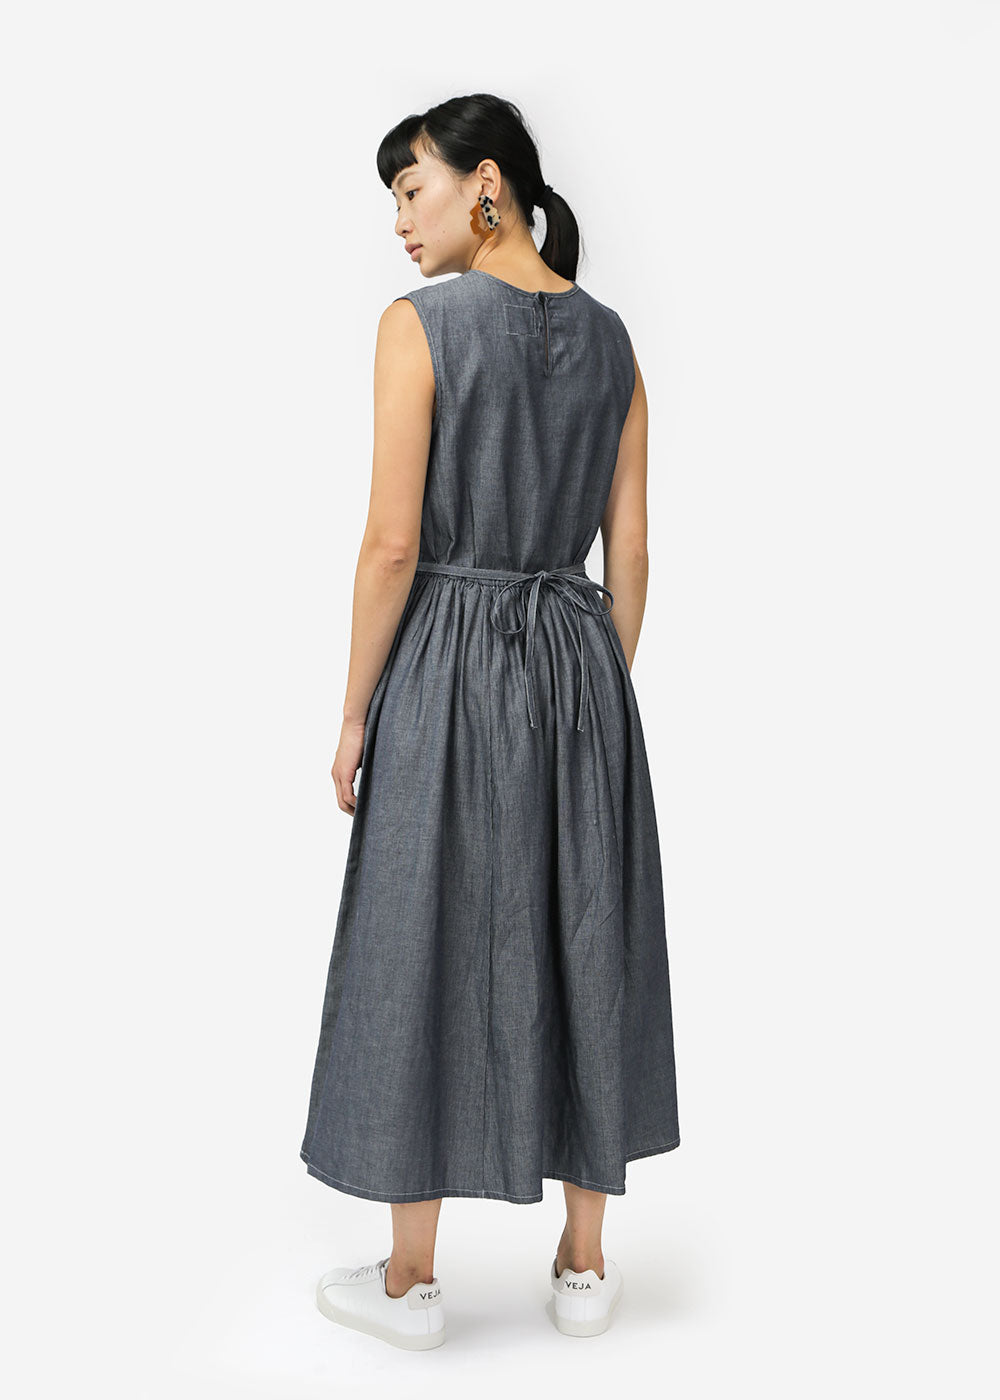 Kowtow Dance With Me Dress — New Classics Studios